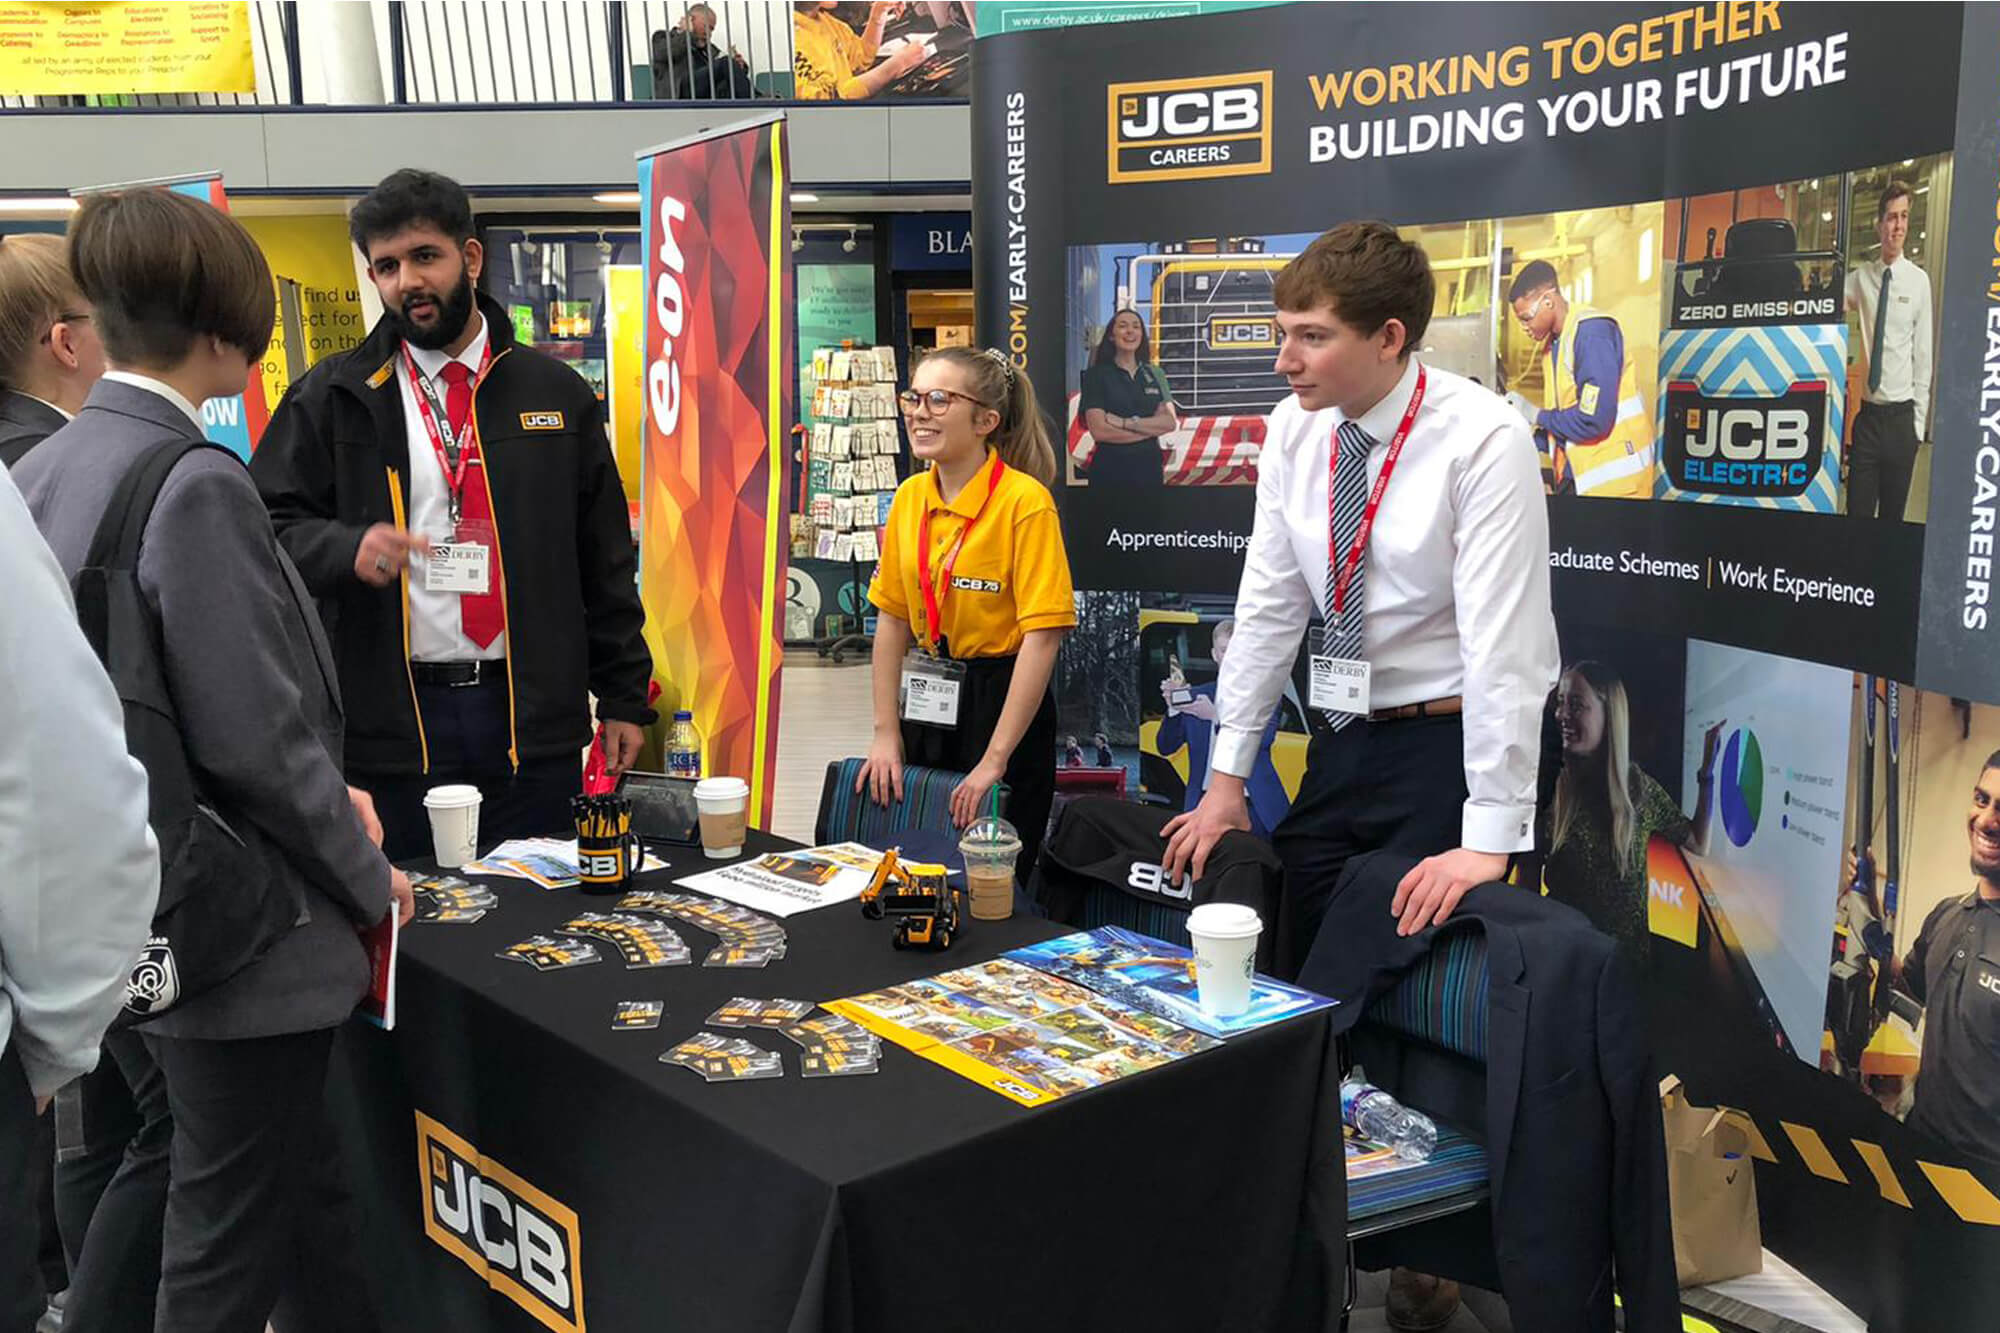 Molly standing at a table covered in a black table cloth and in front of a JCB screen, talking to people in a crowd.